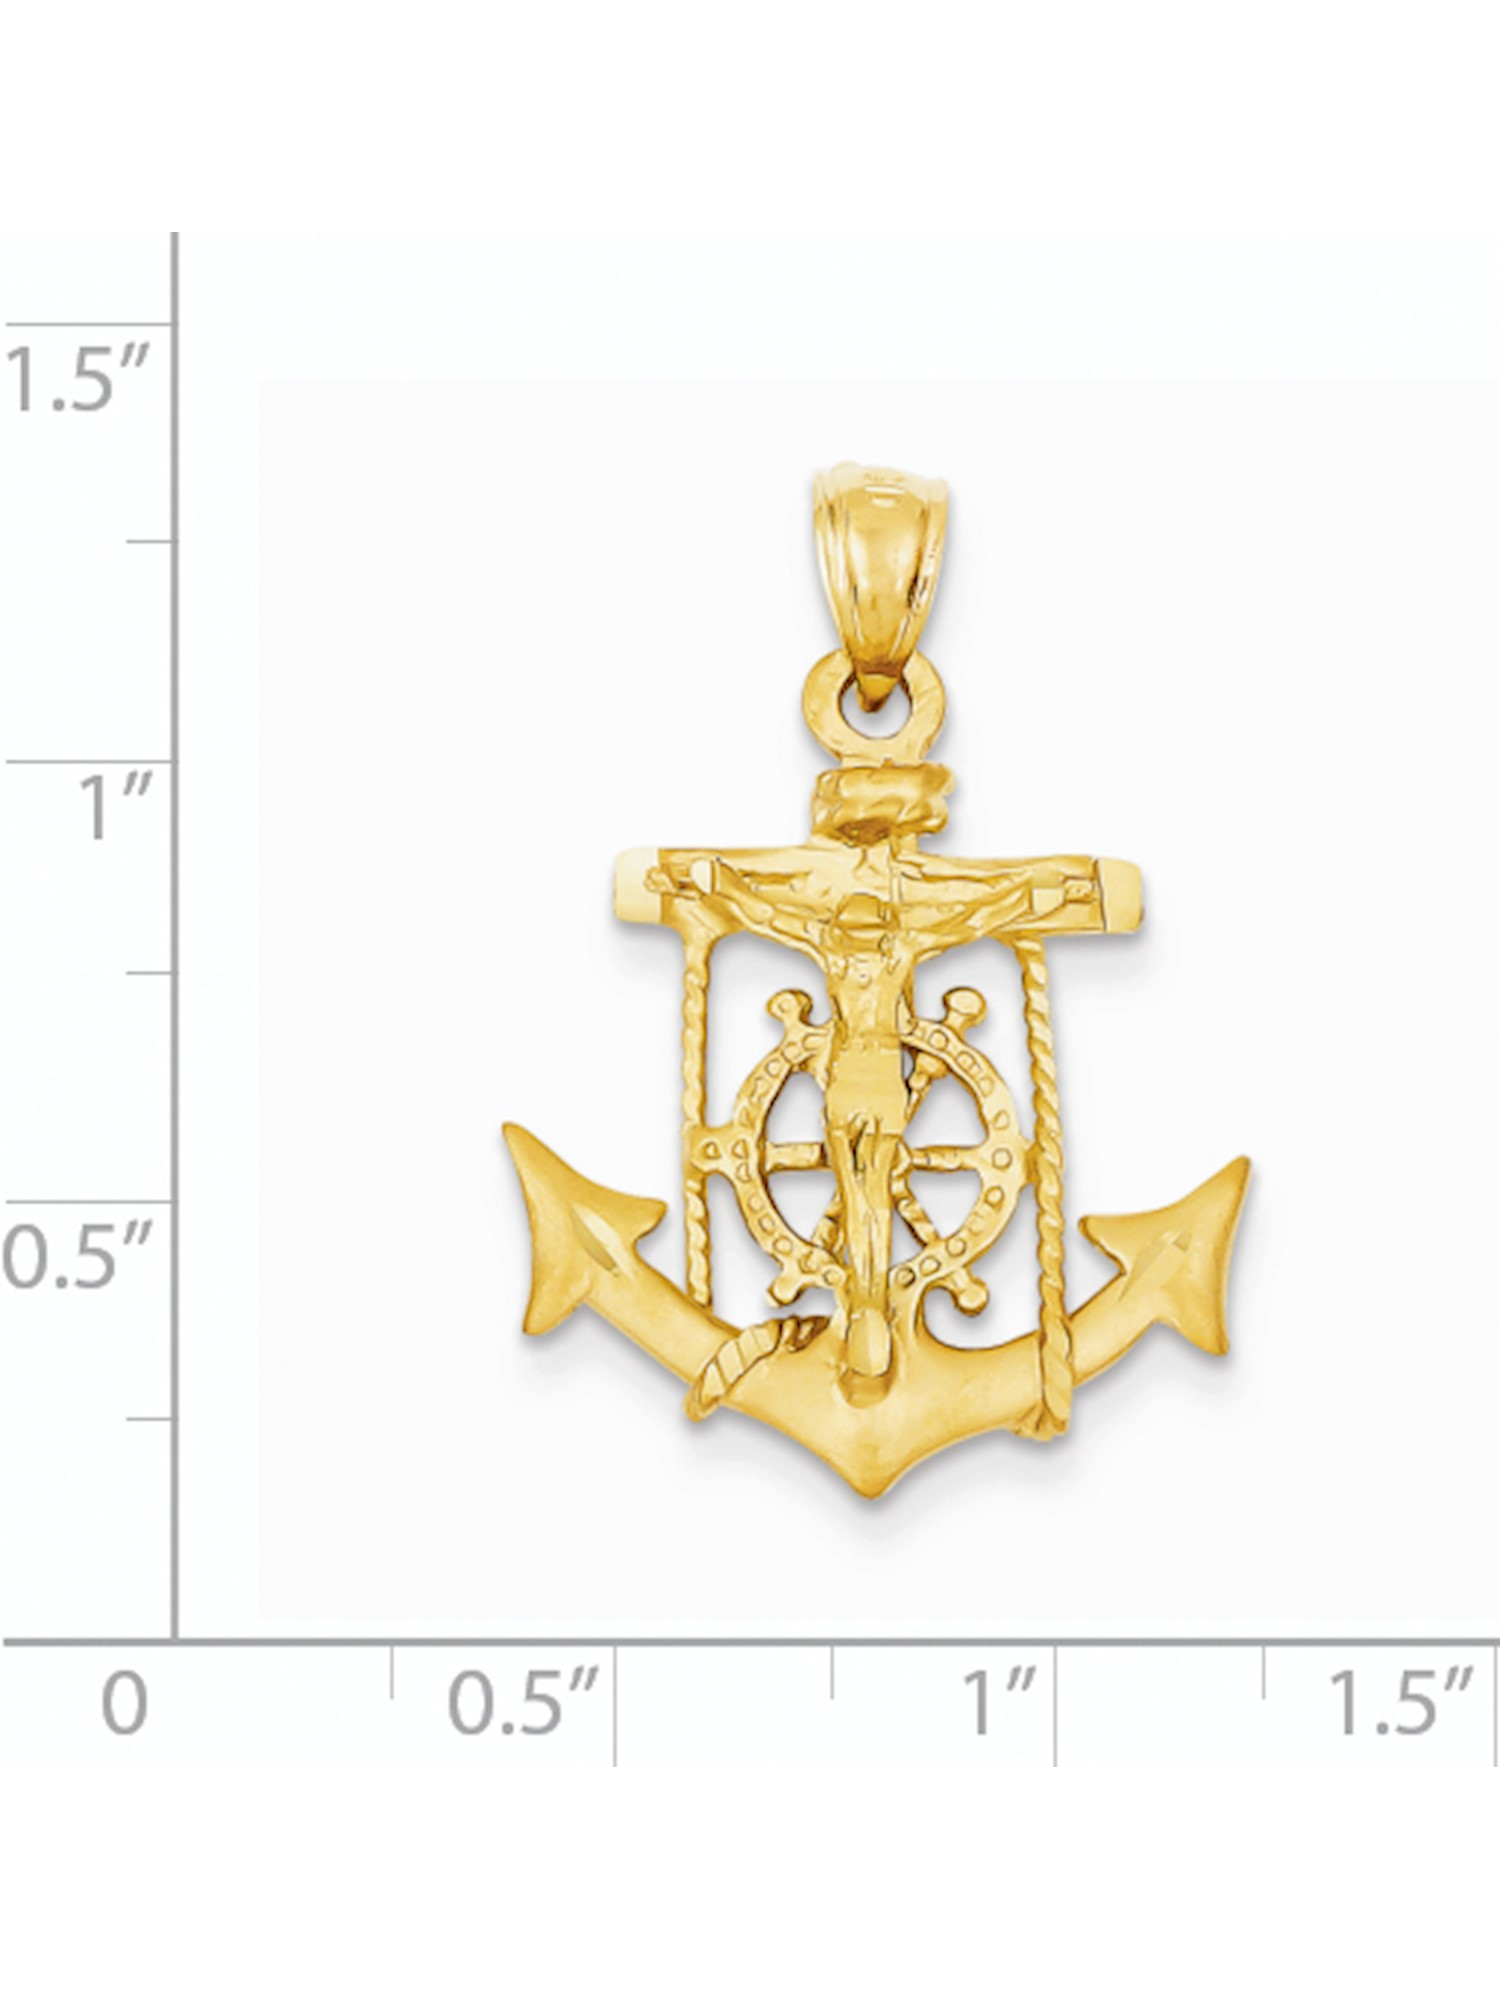 Charm Made in USA 14k Yellow Gold SHEEP Pendant